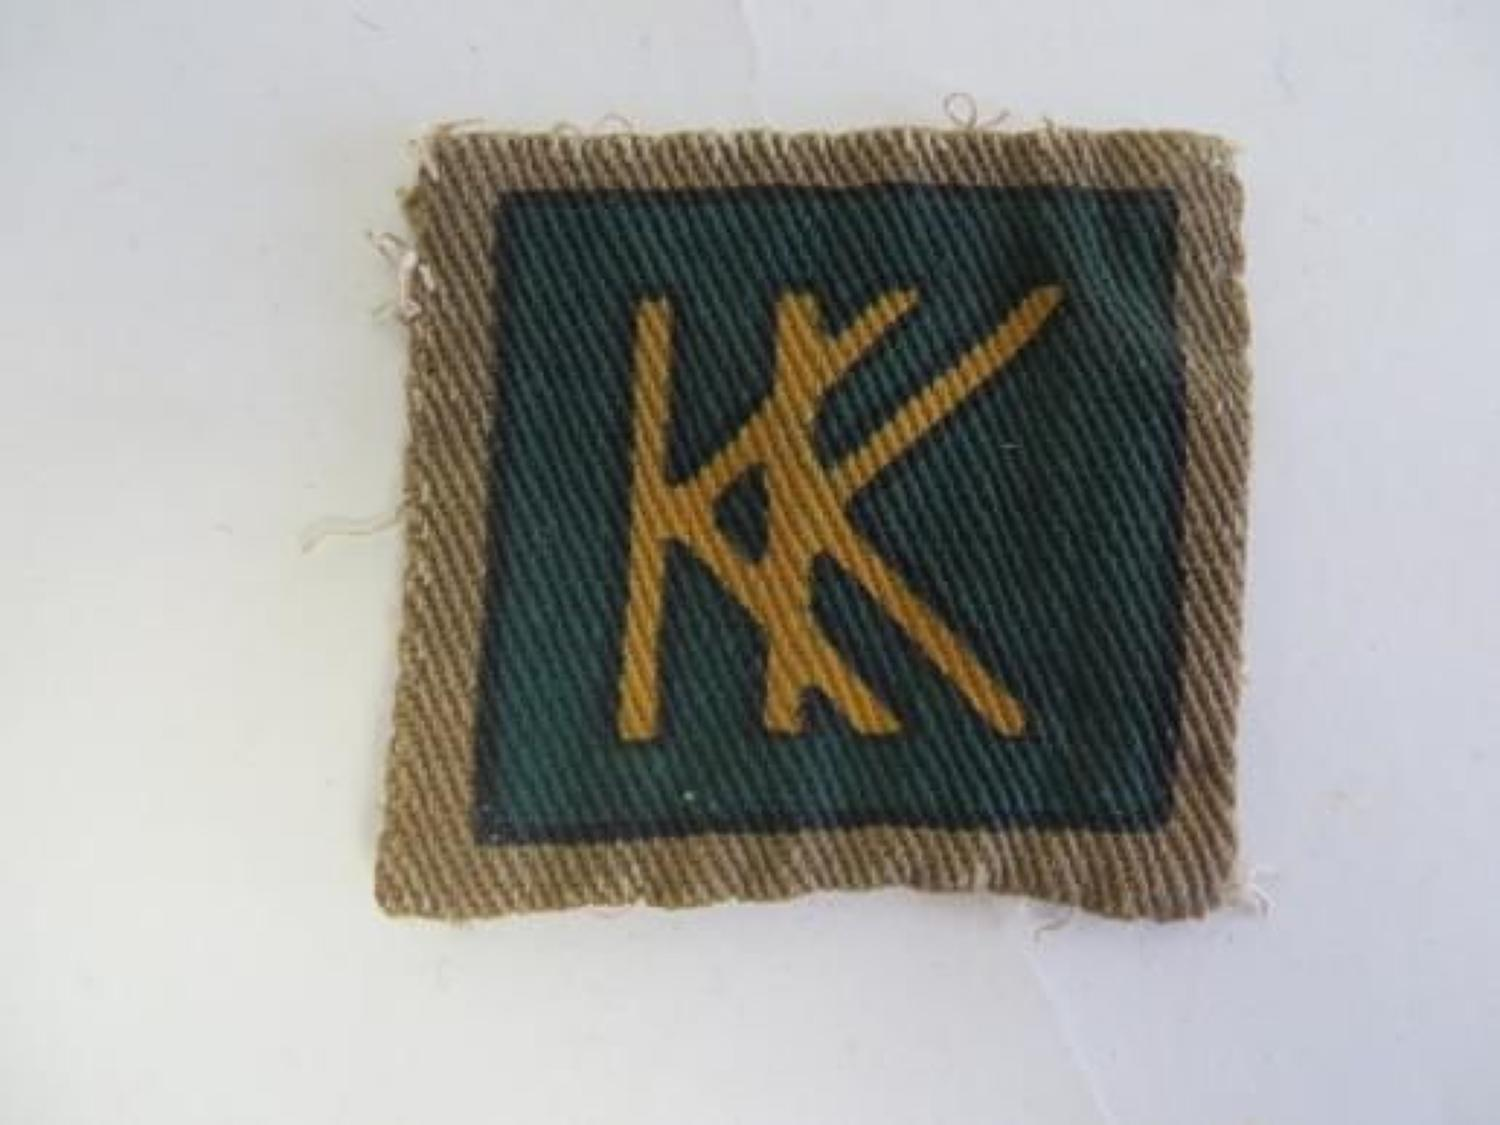 49th Independent Infantry Brigade Formation badge